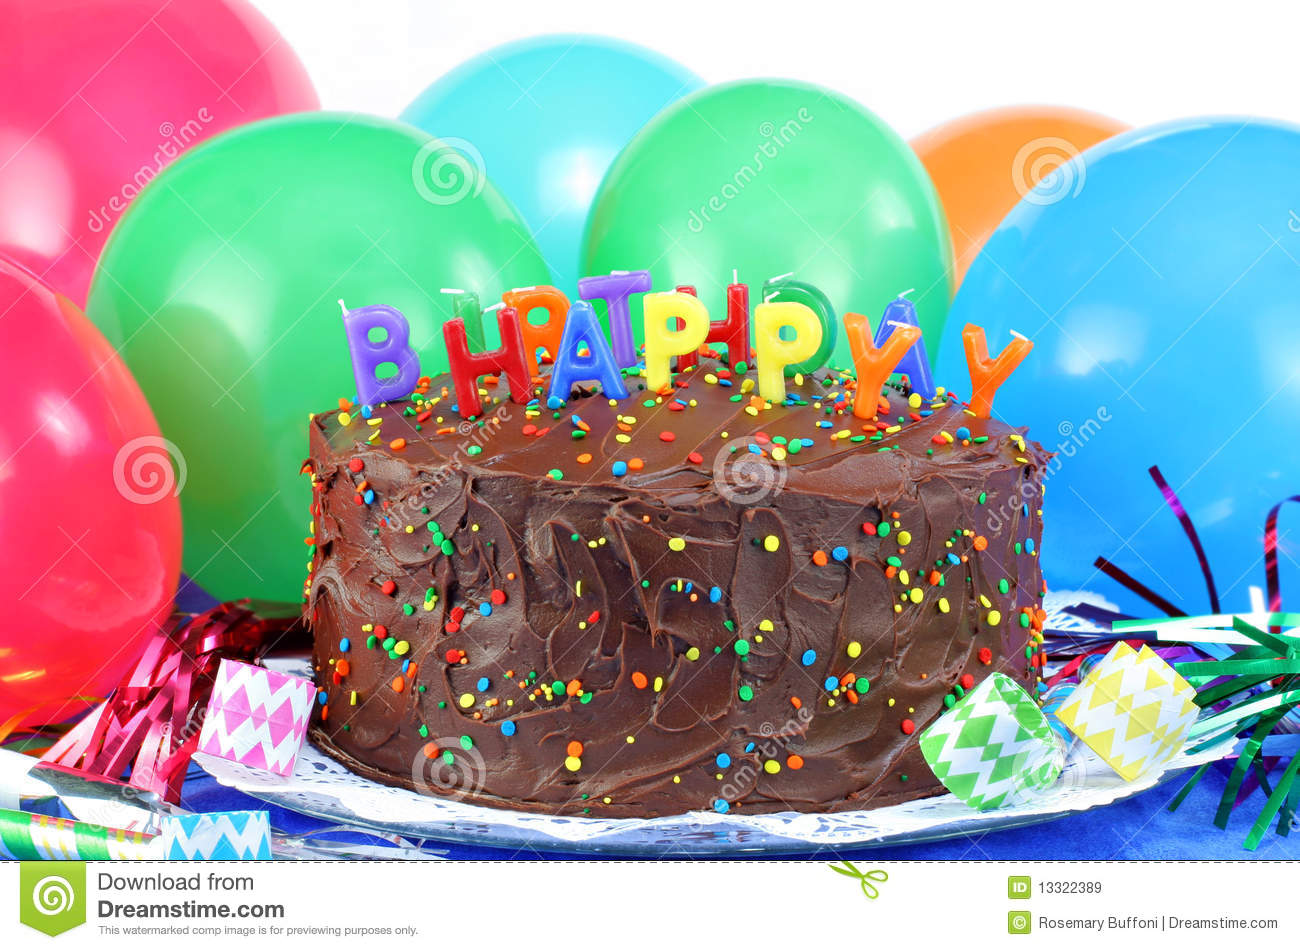 picture of birthday cake and balloons ; happy-birthday-chocolate-cake-balloons-13322389